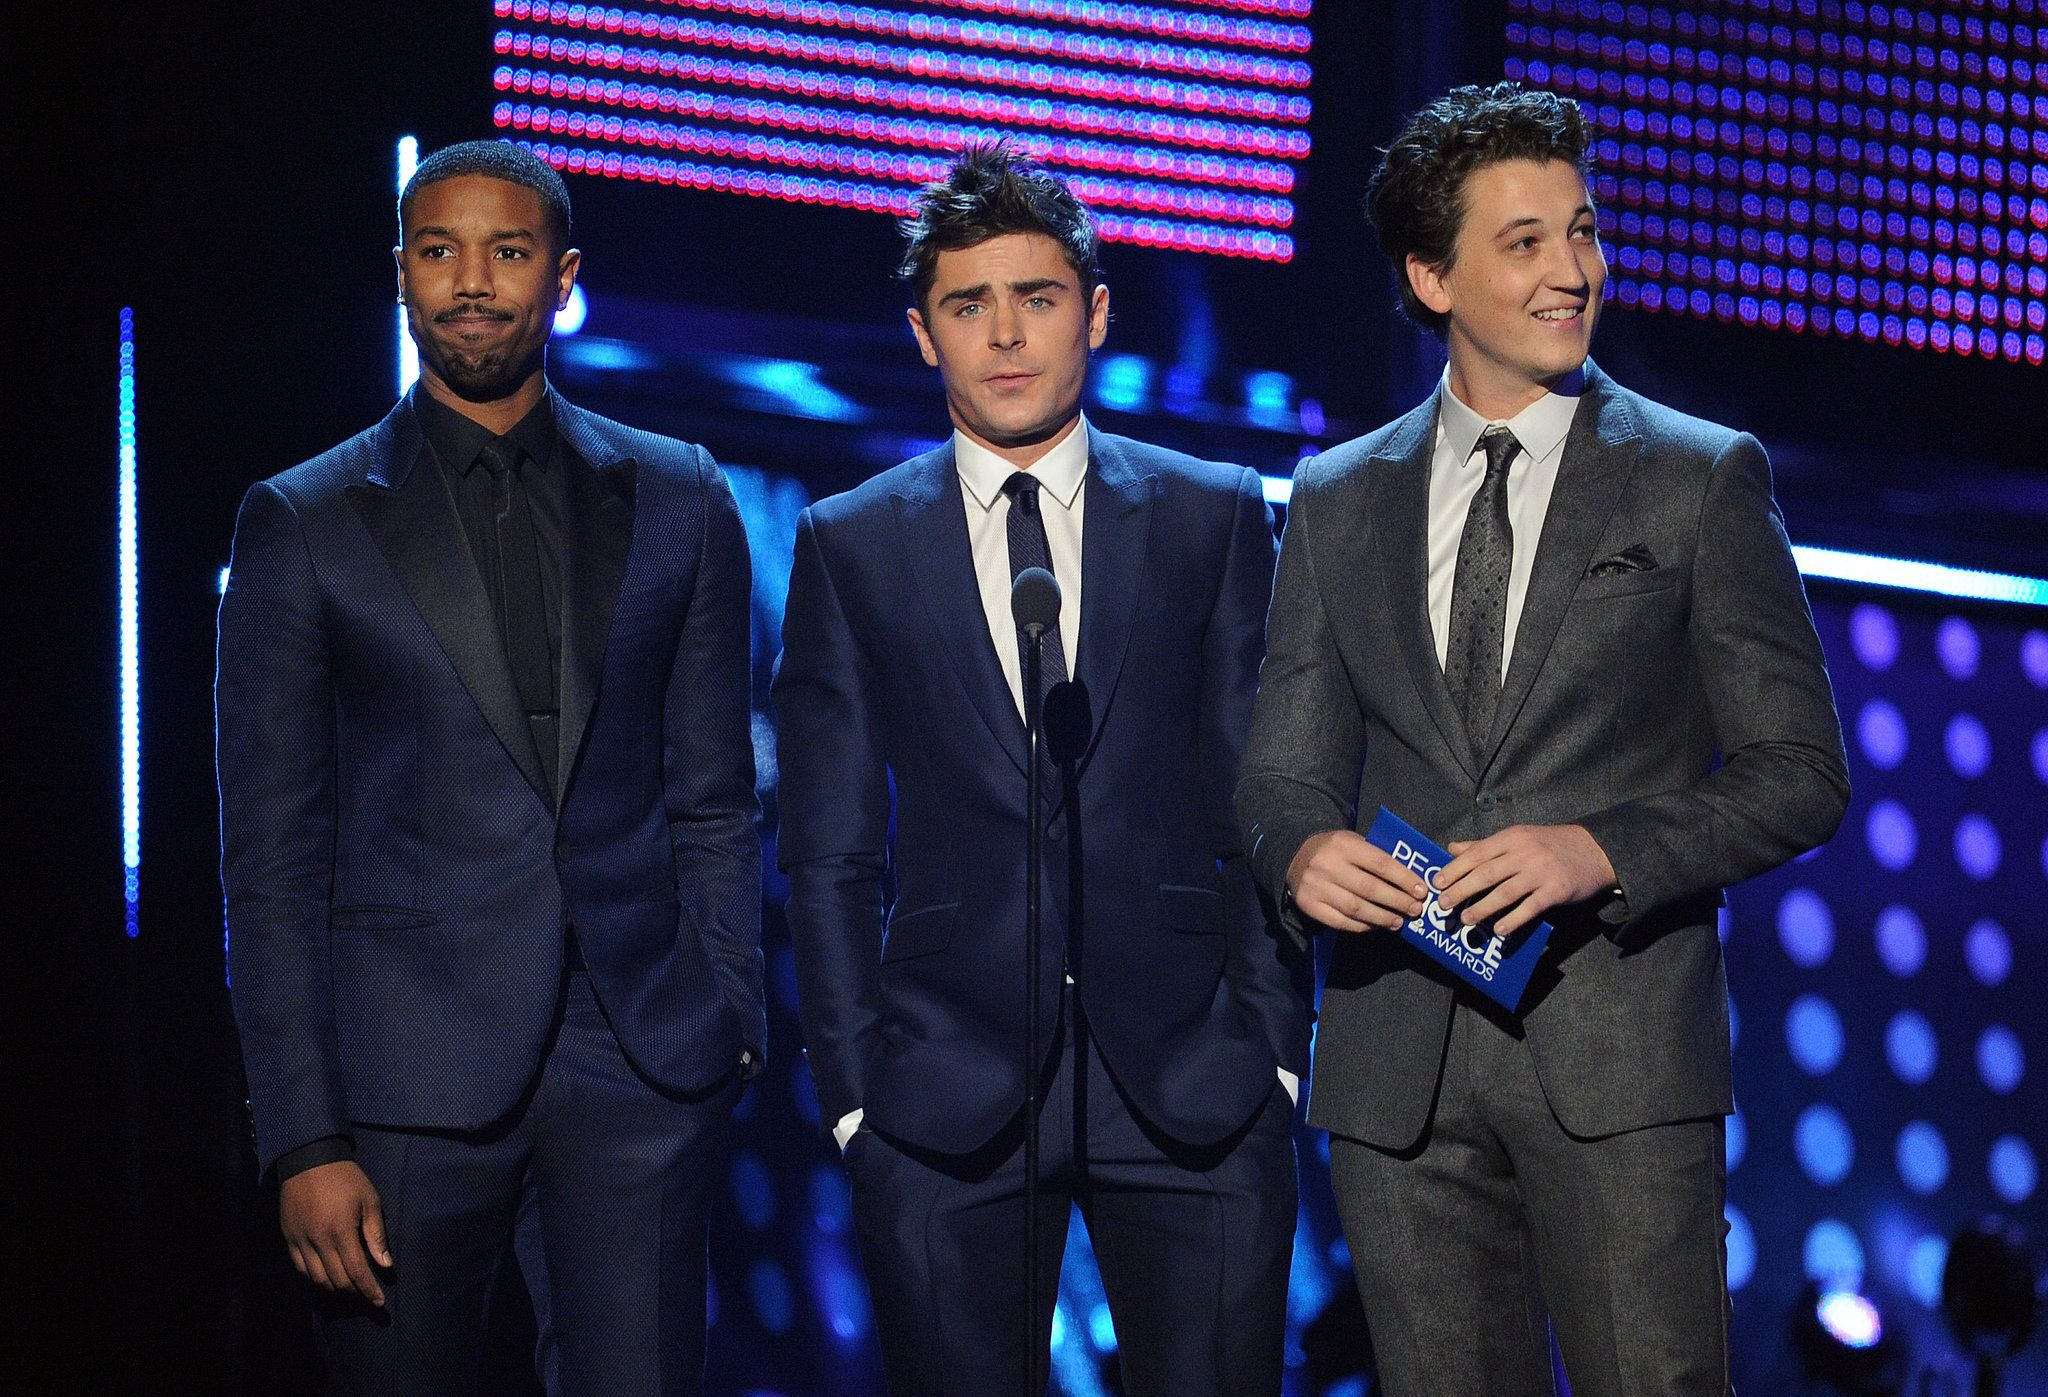 Go inside the peoples choice awards miles teller zac efron michael b jordan zac efron and miles teller presented at the pcas kristyandbryce Images